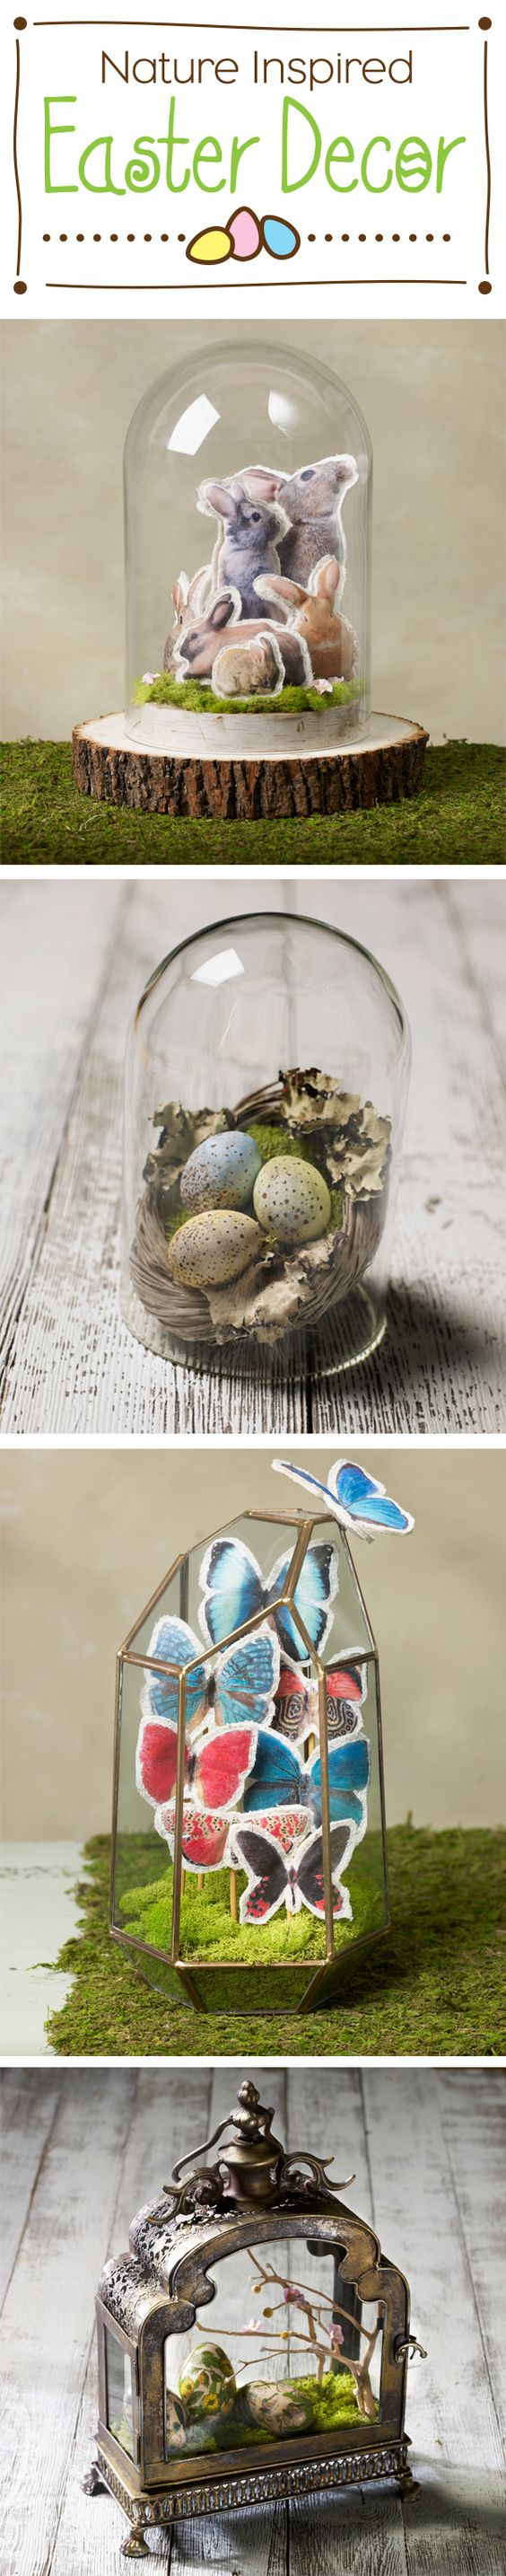 DIY Nature Inspired Easter Decor